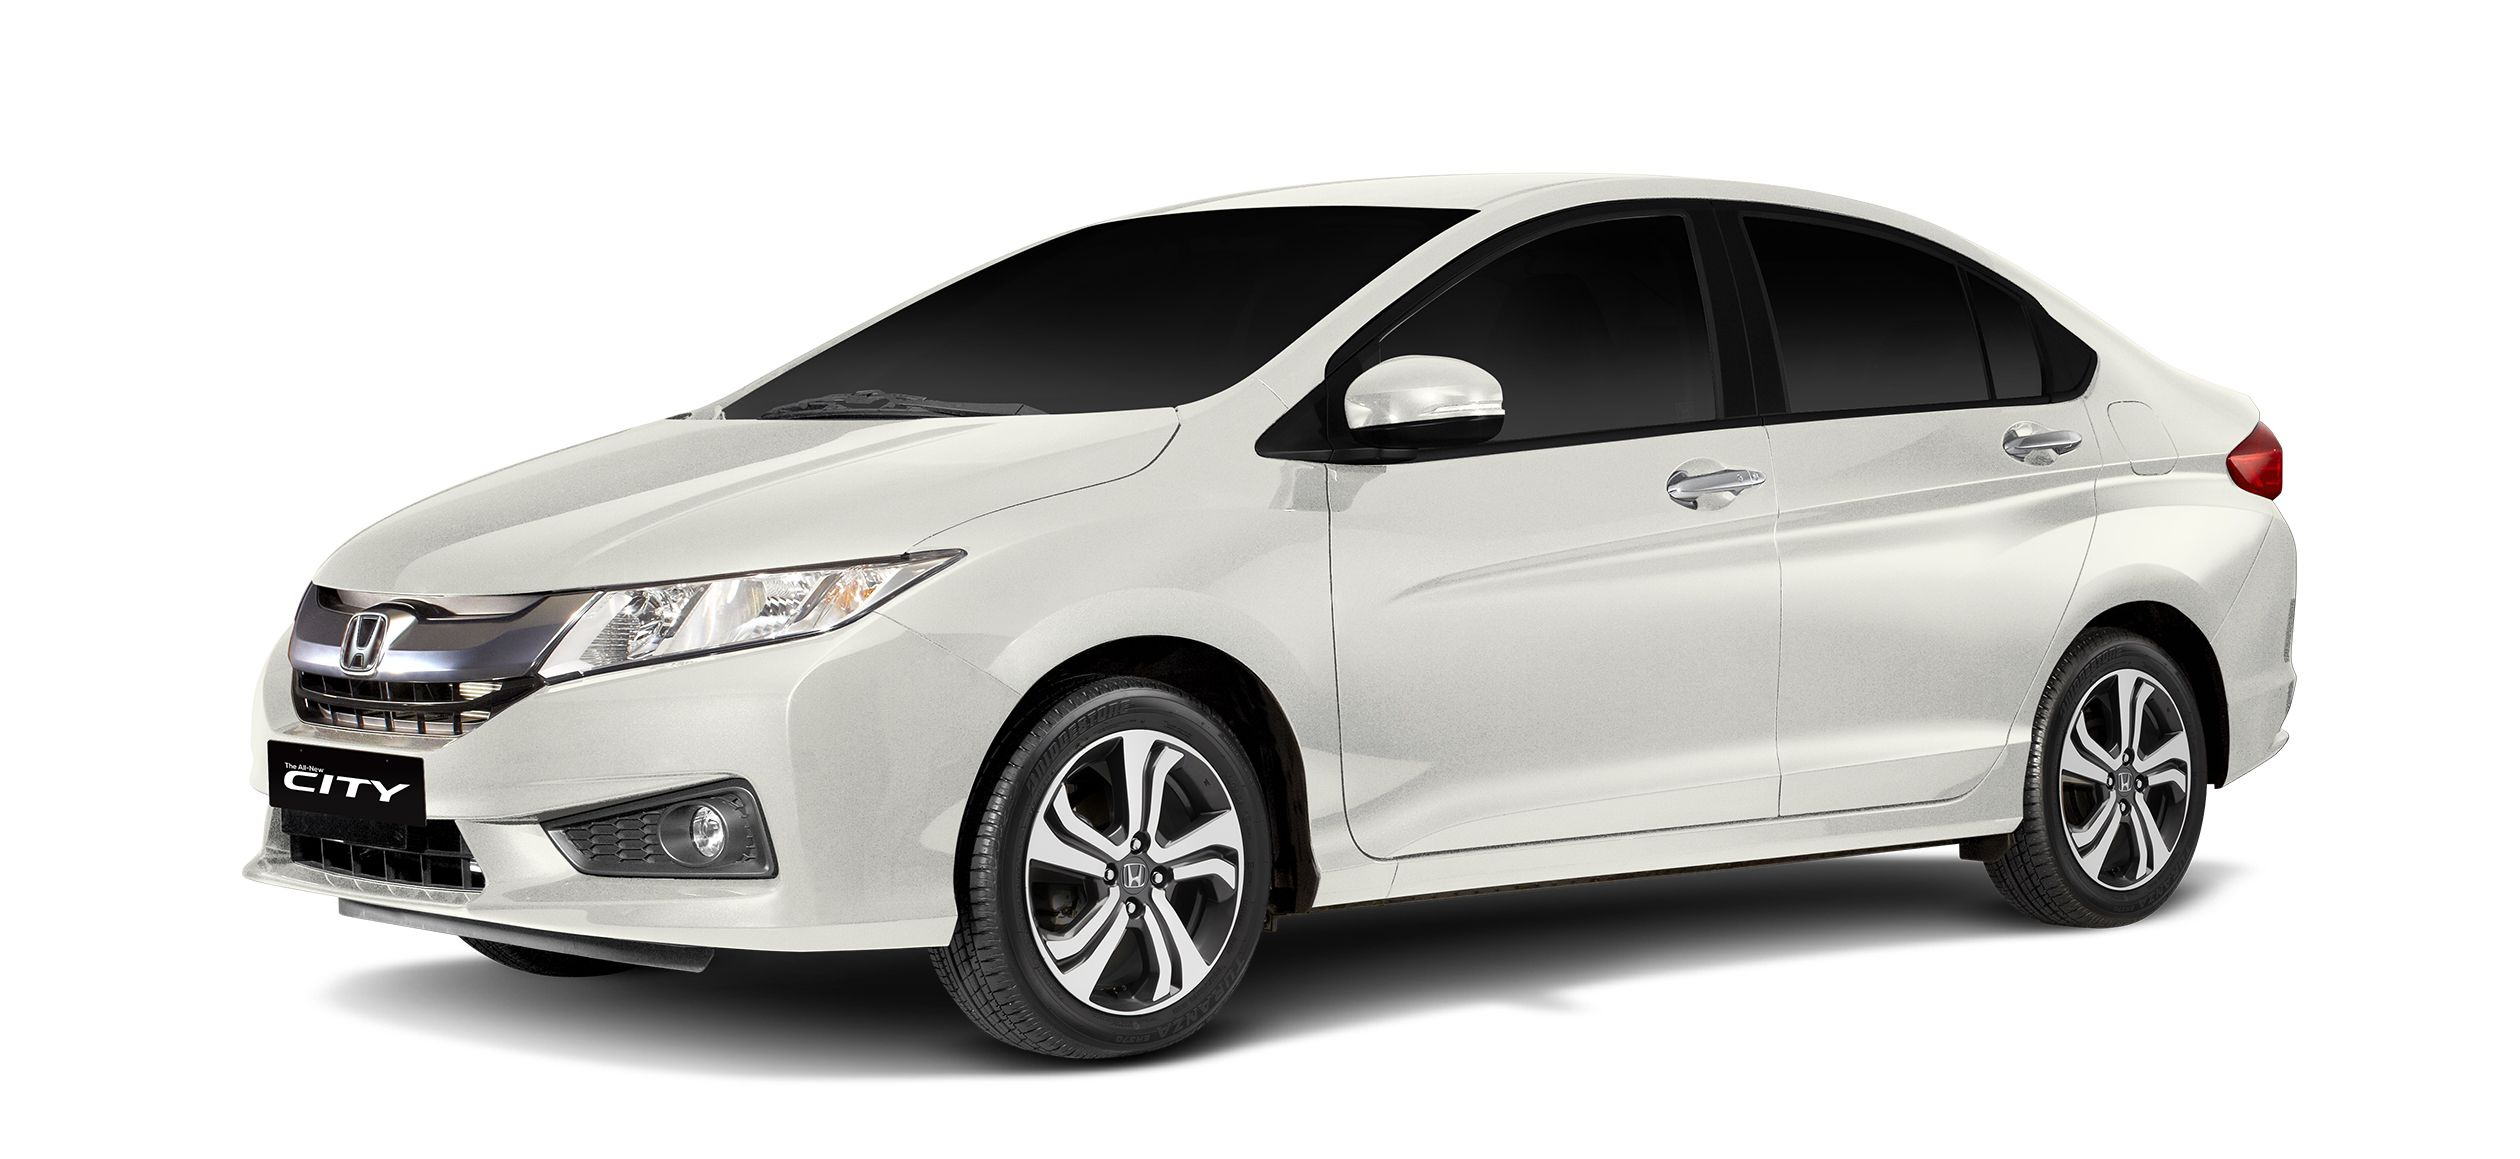 Honda Cars Philippines Price List Auto Search 2016